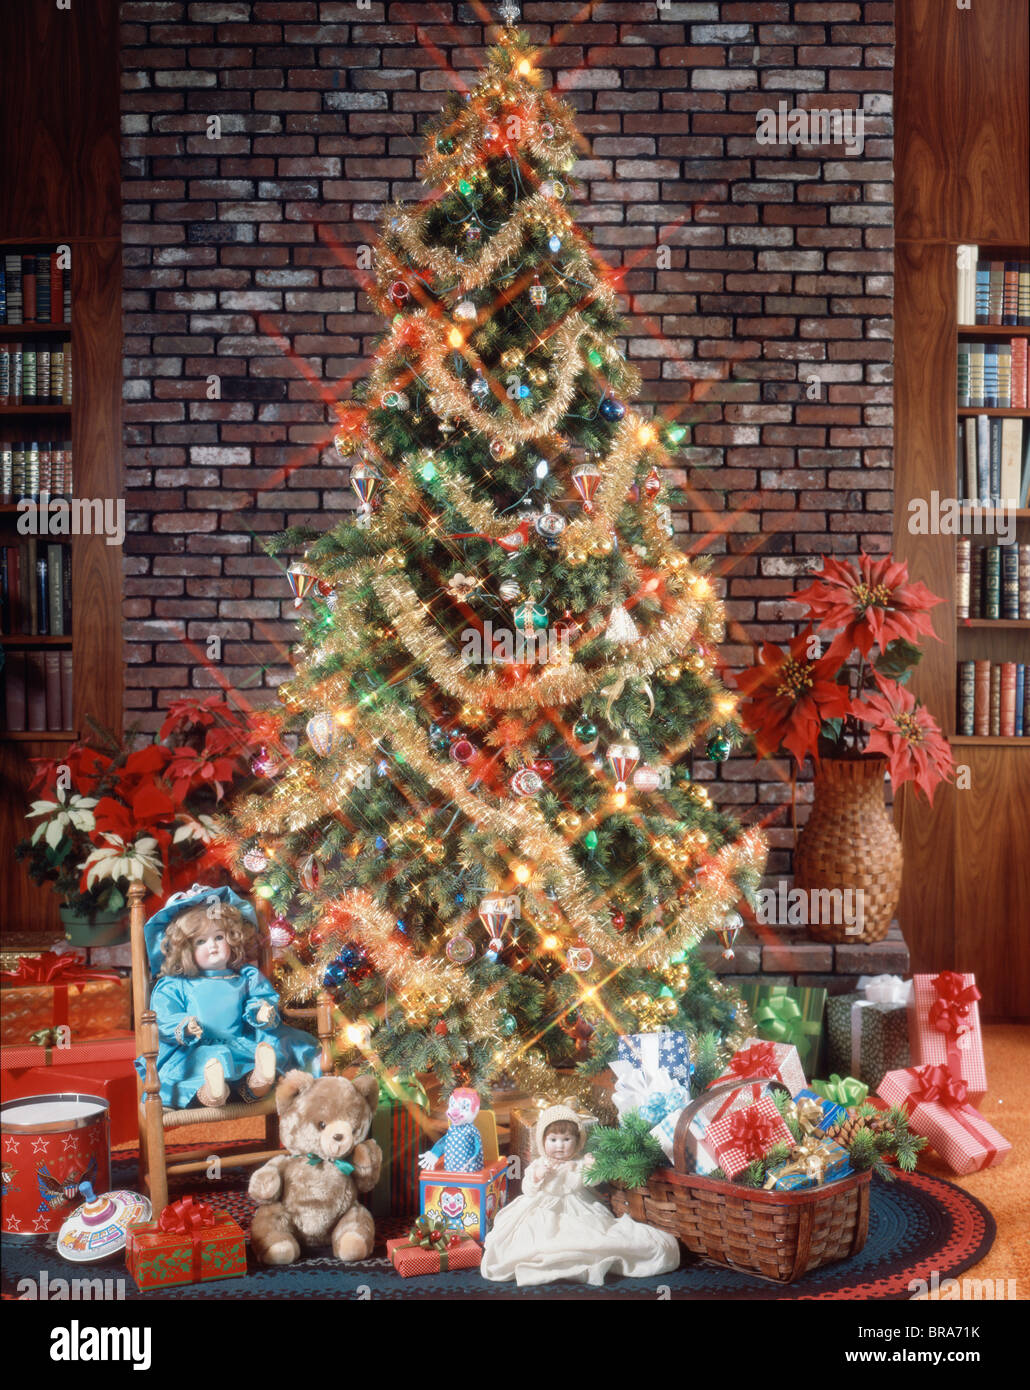 christmas tree with decorations garland lights toys and presents under tree - 1980s Christmas Decorations